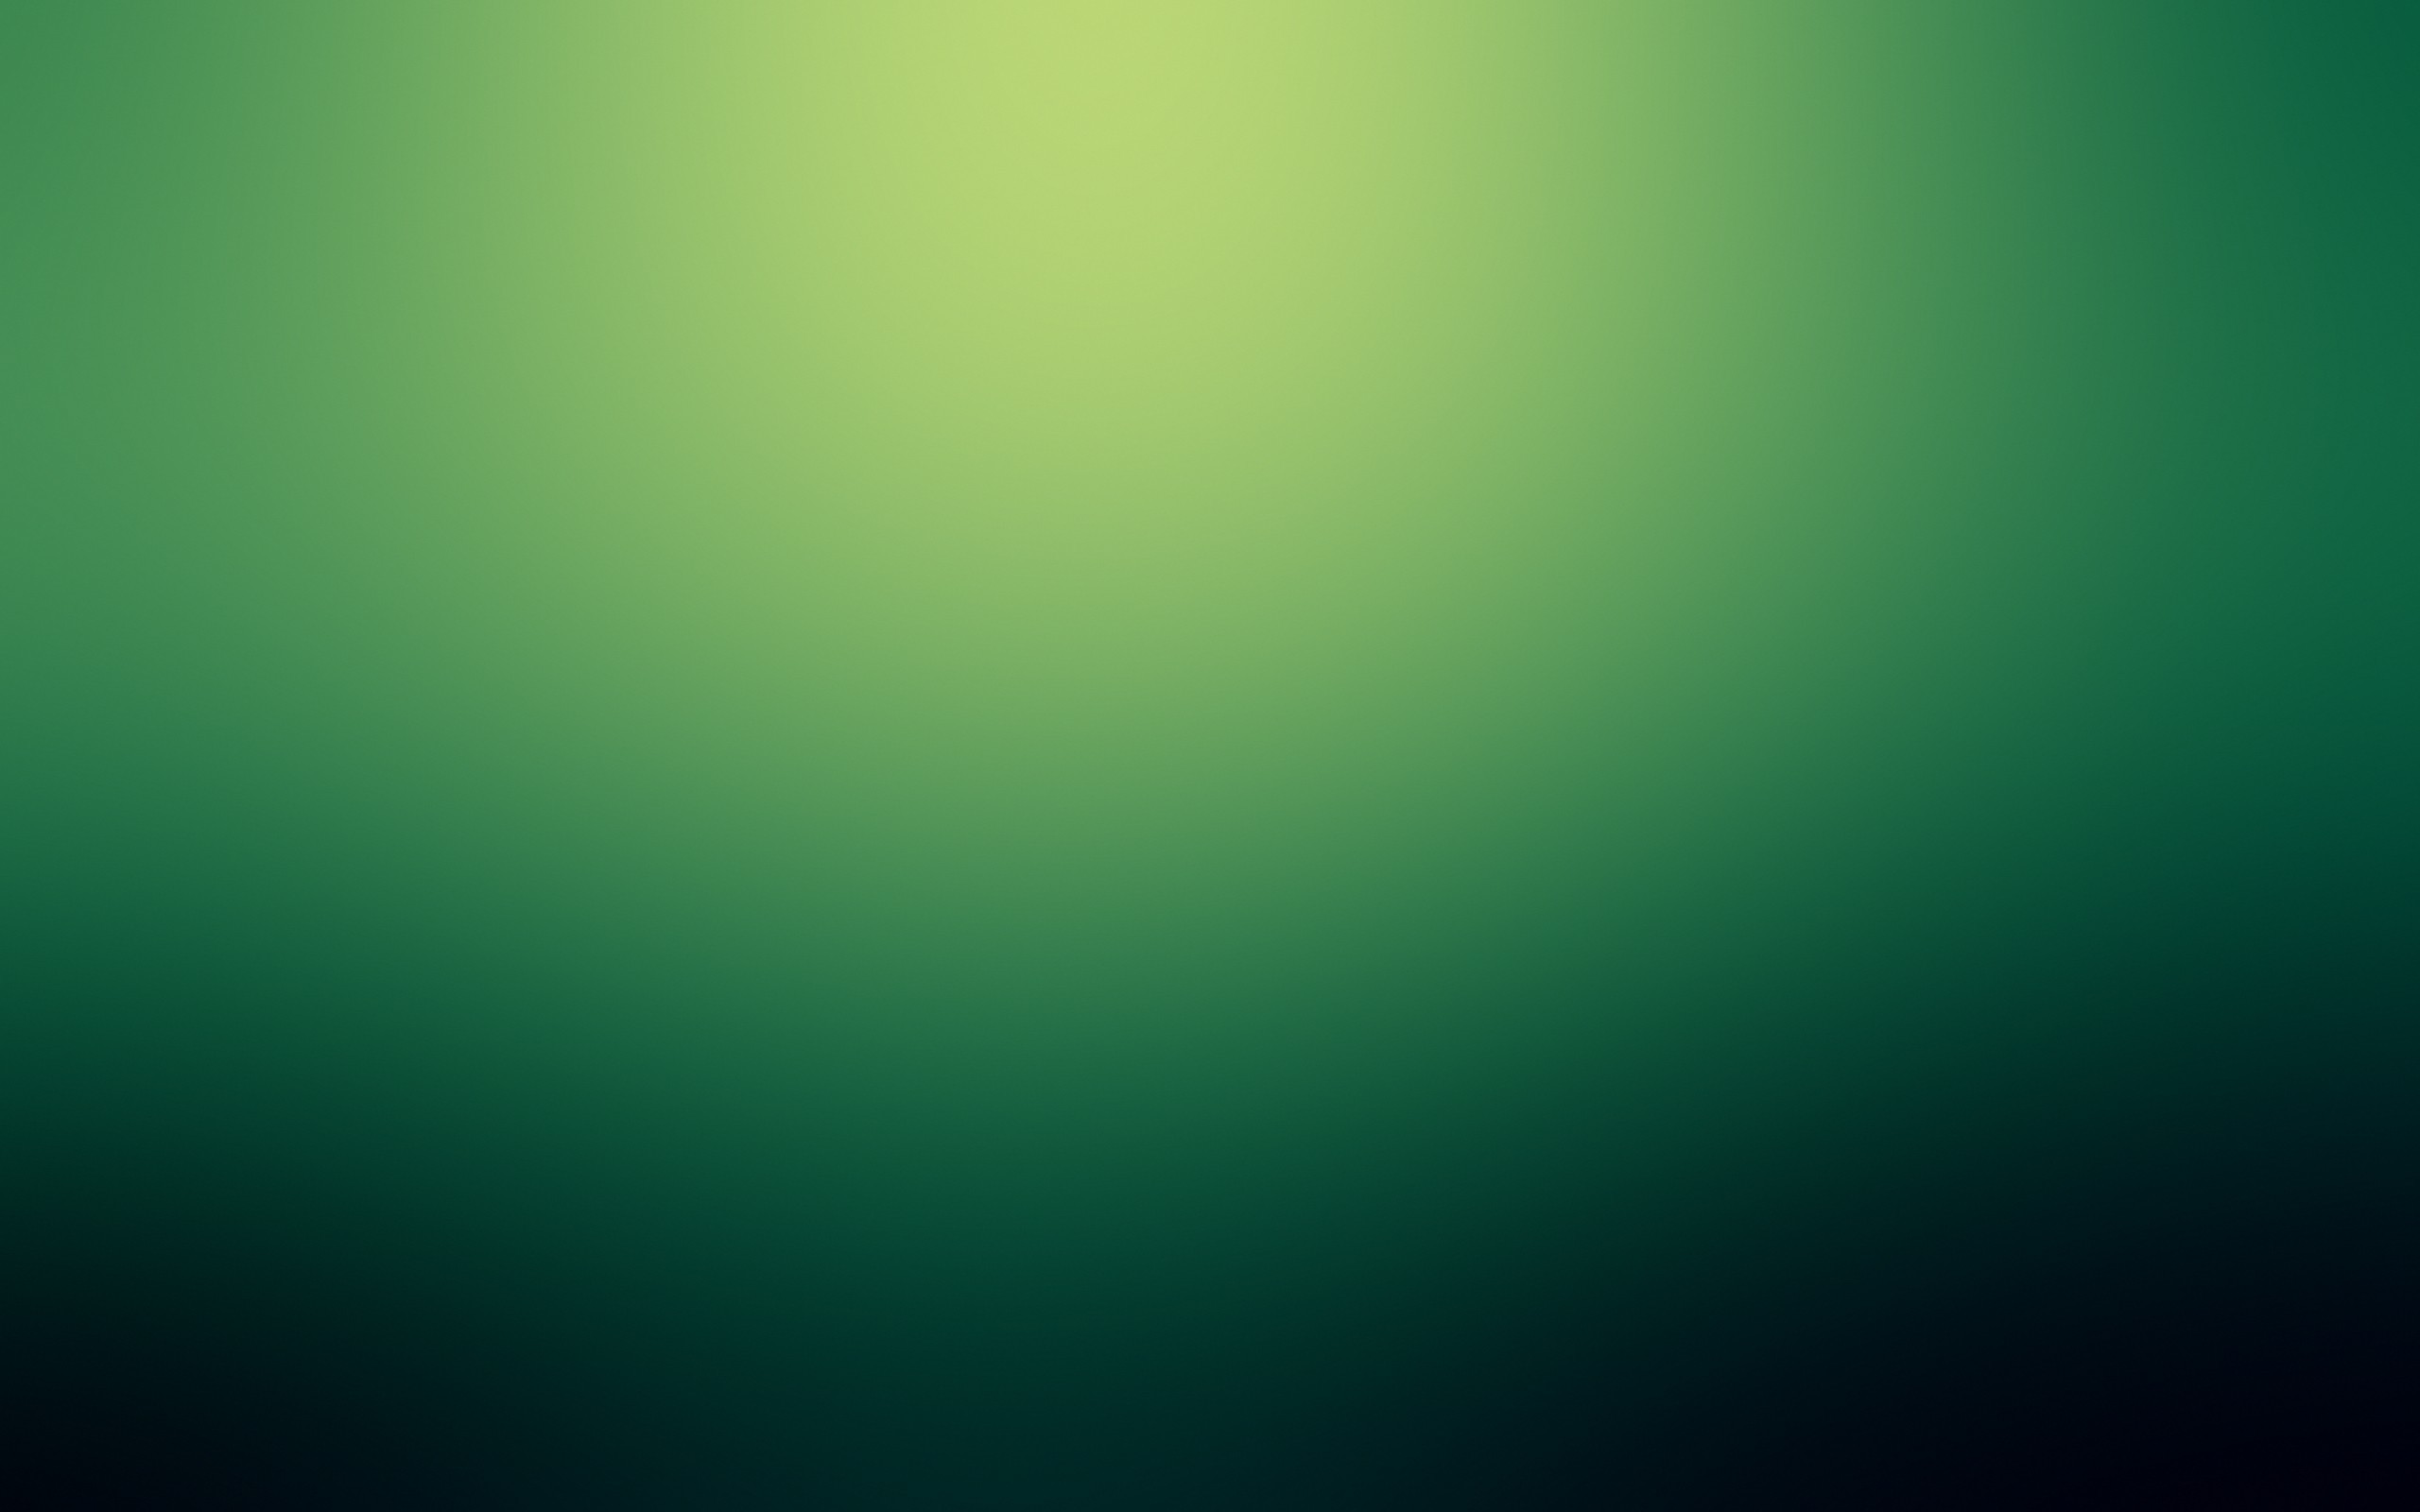 Green abstract minimalistic gaussian HD Wallpaper